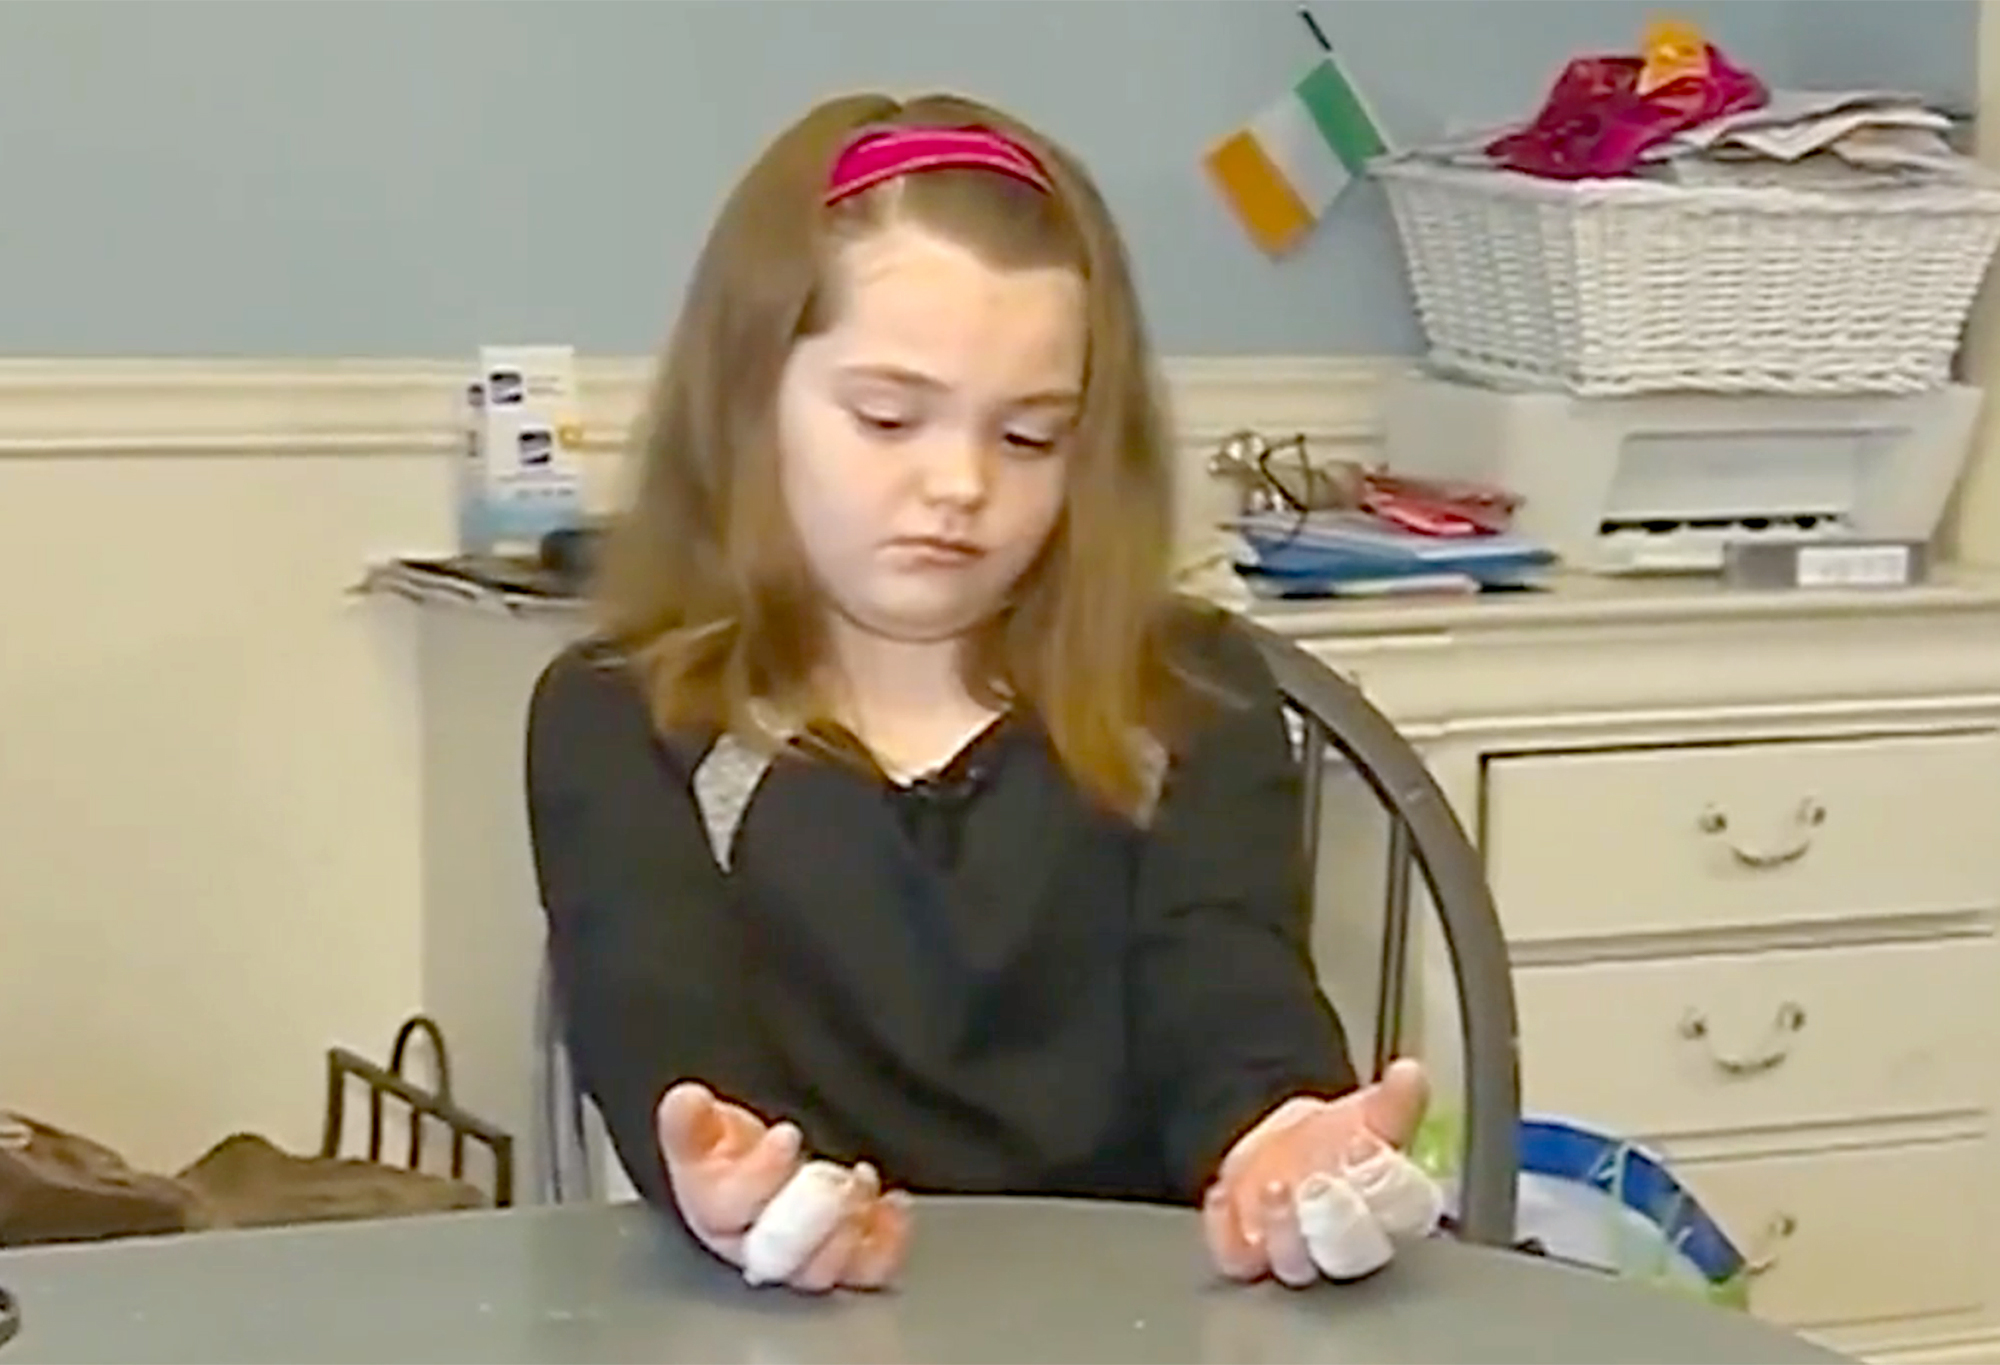 11-Year-Old Massachusetts Girl Suffers Third-Degree Burns on Hands After Making Homemade Slime